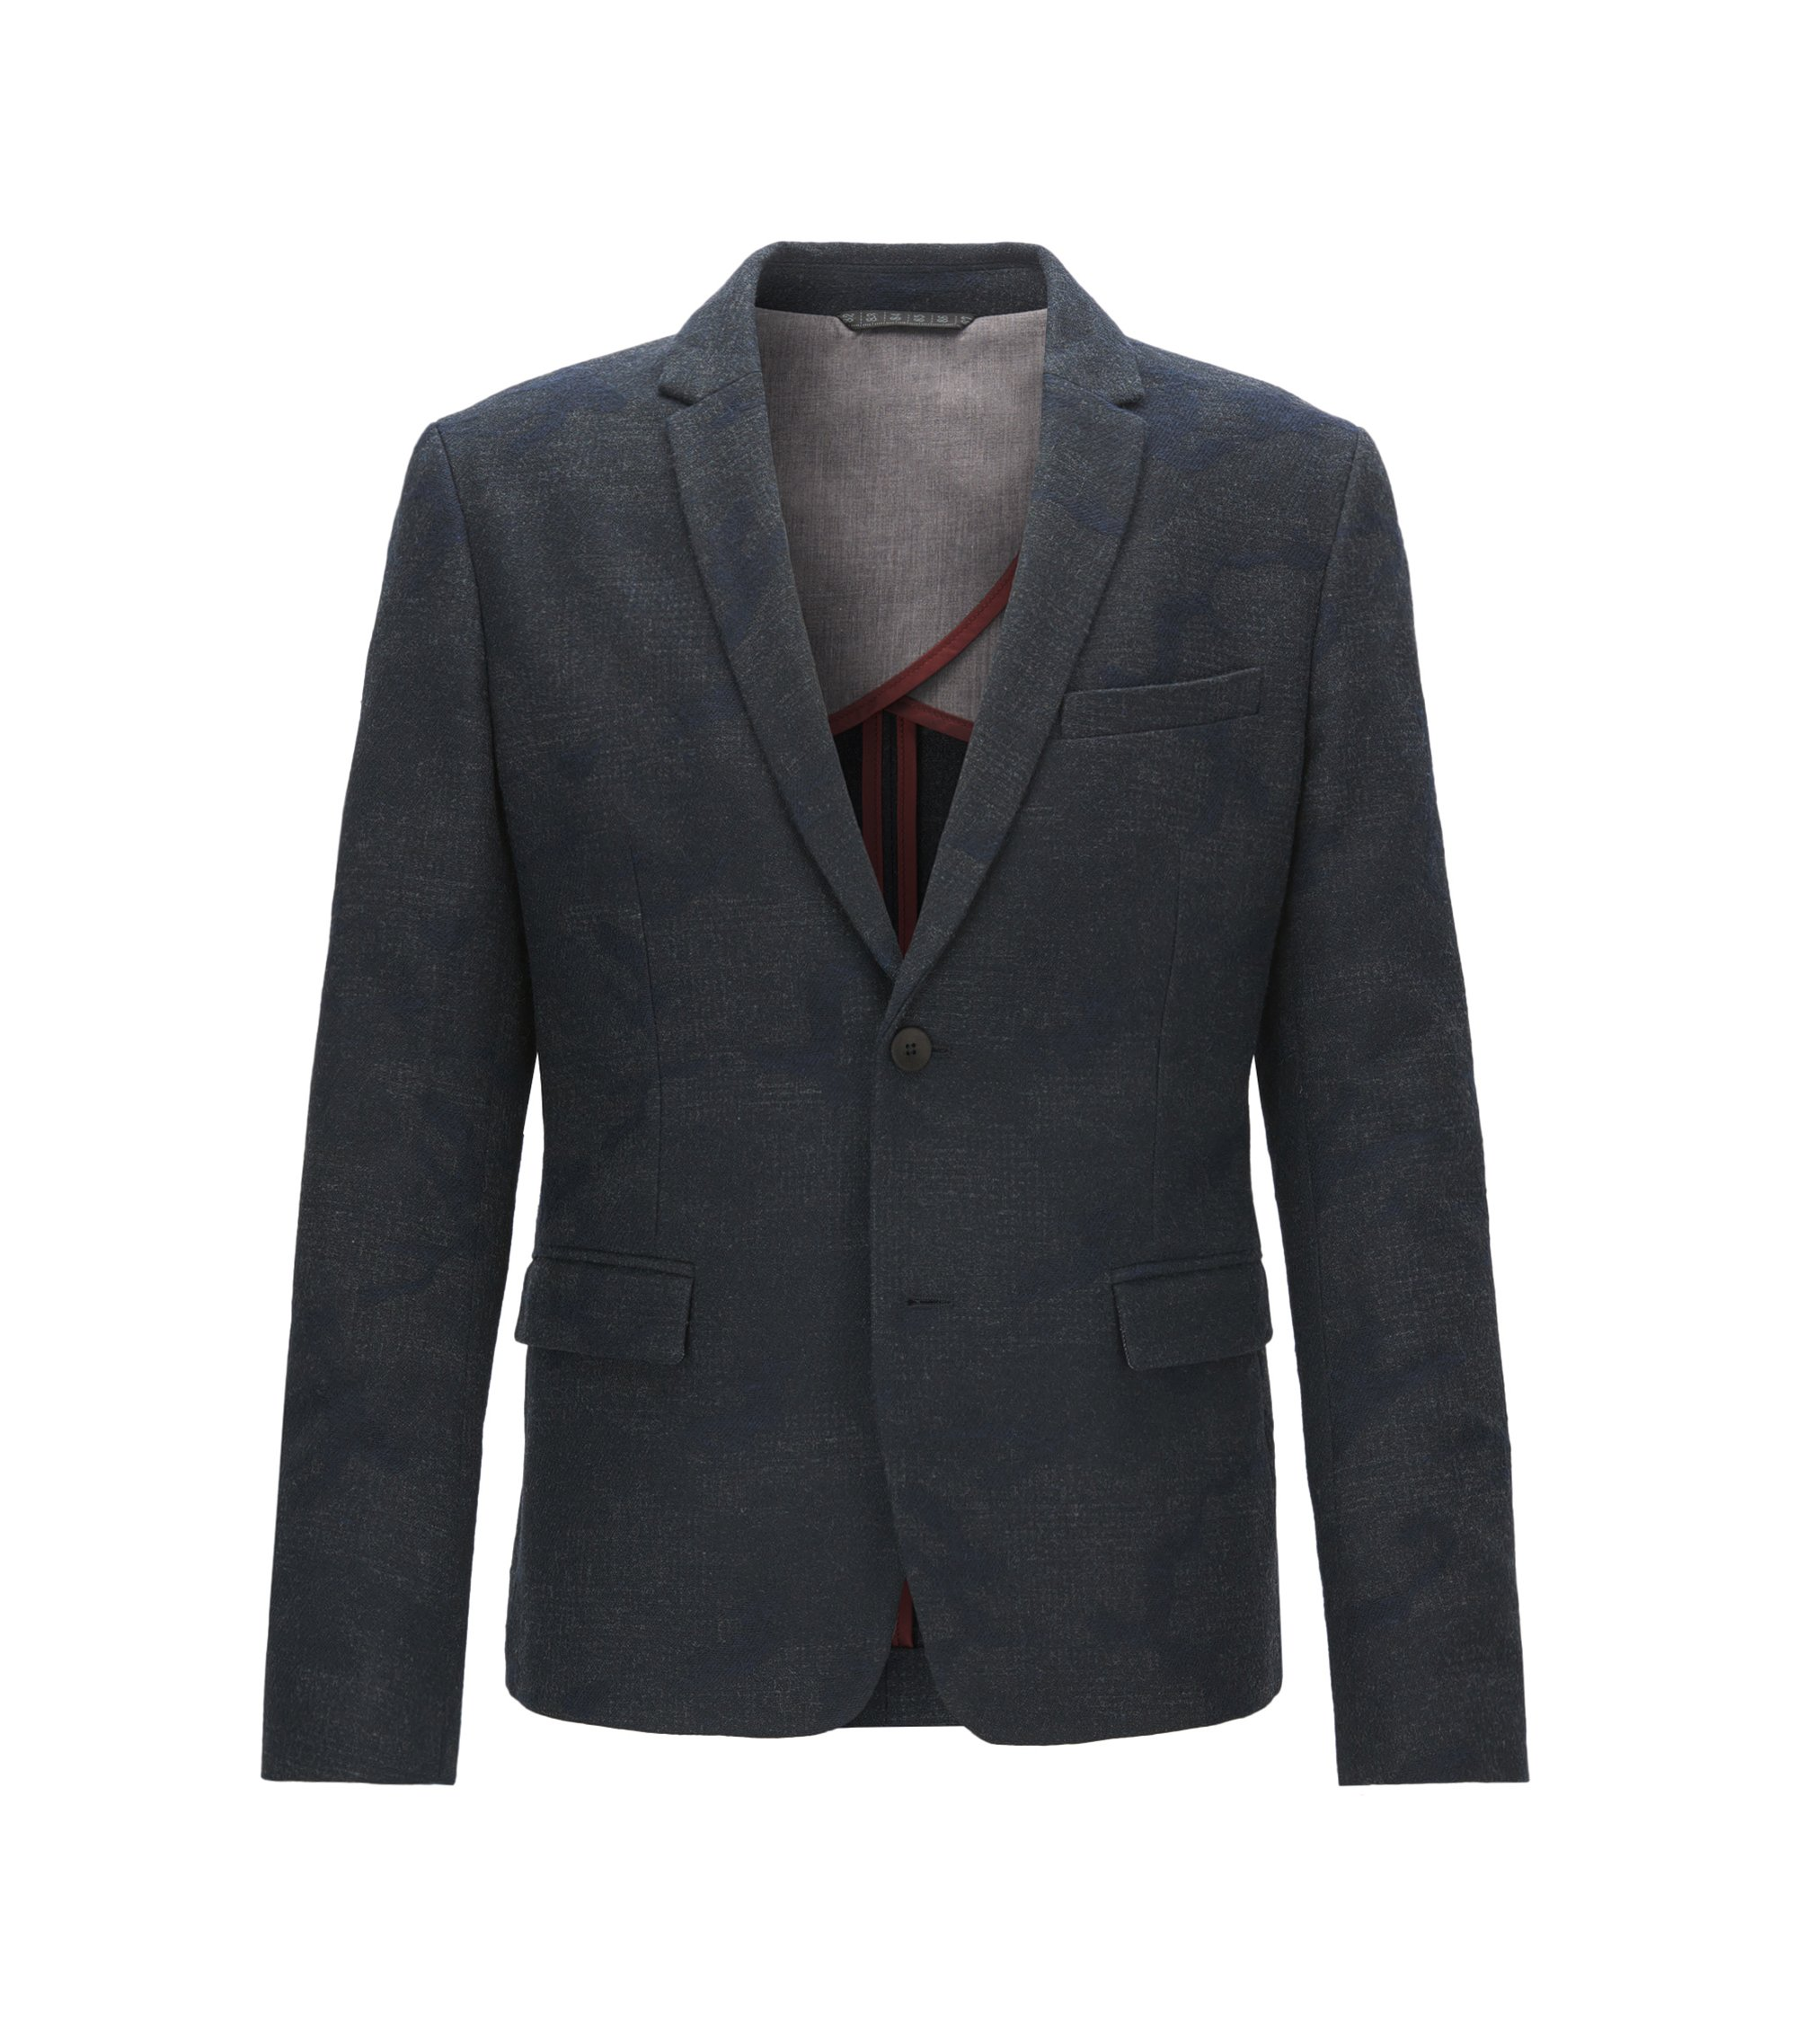 Cotton Blend Sport Coat, Slim Fit  | Bamou, Dark Blue